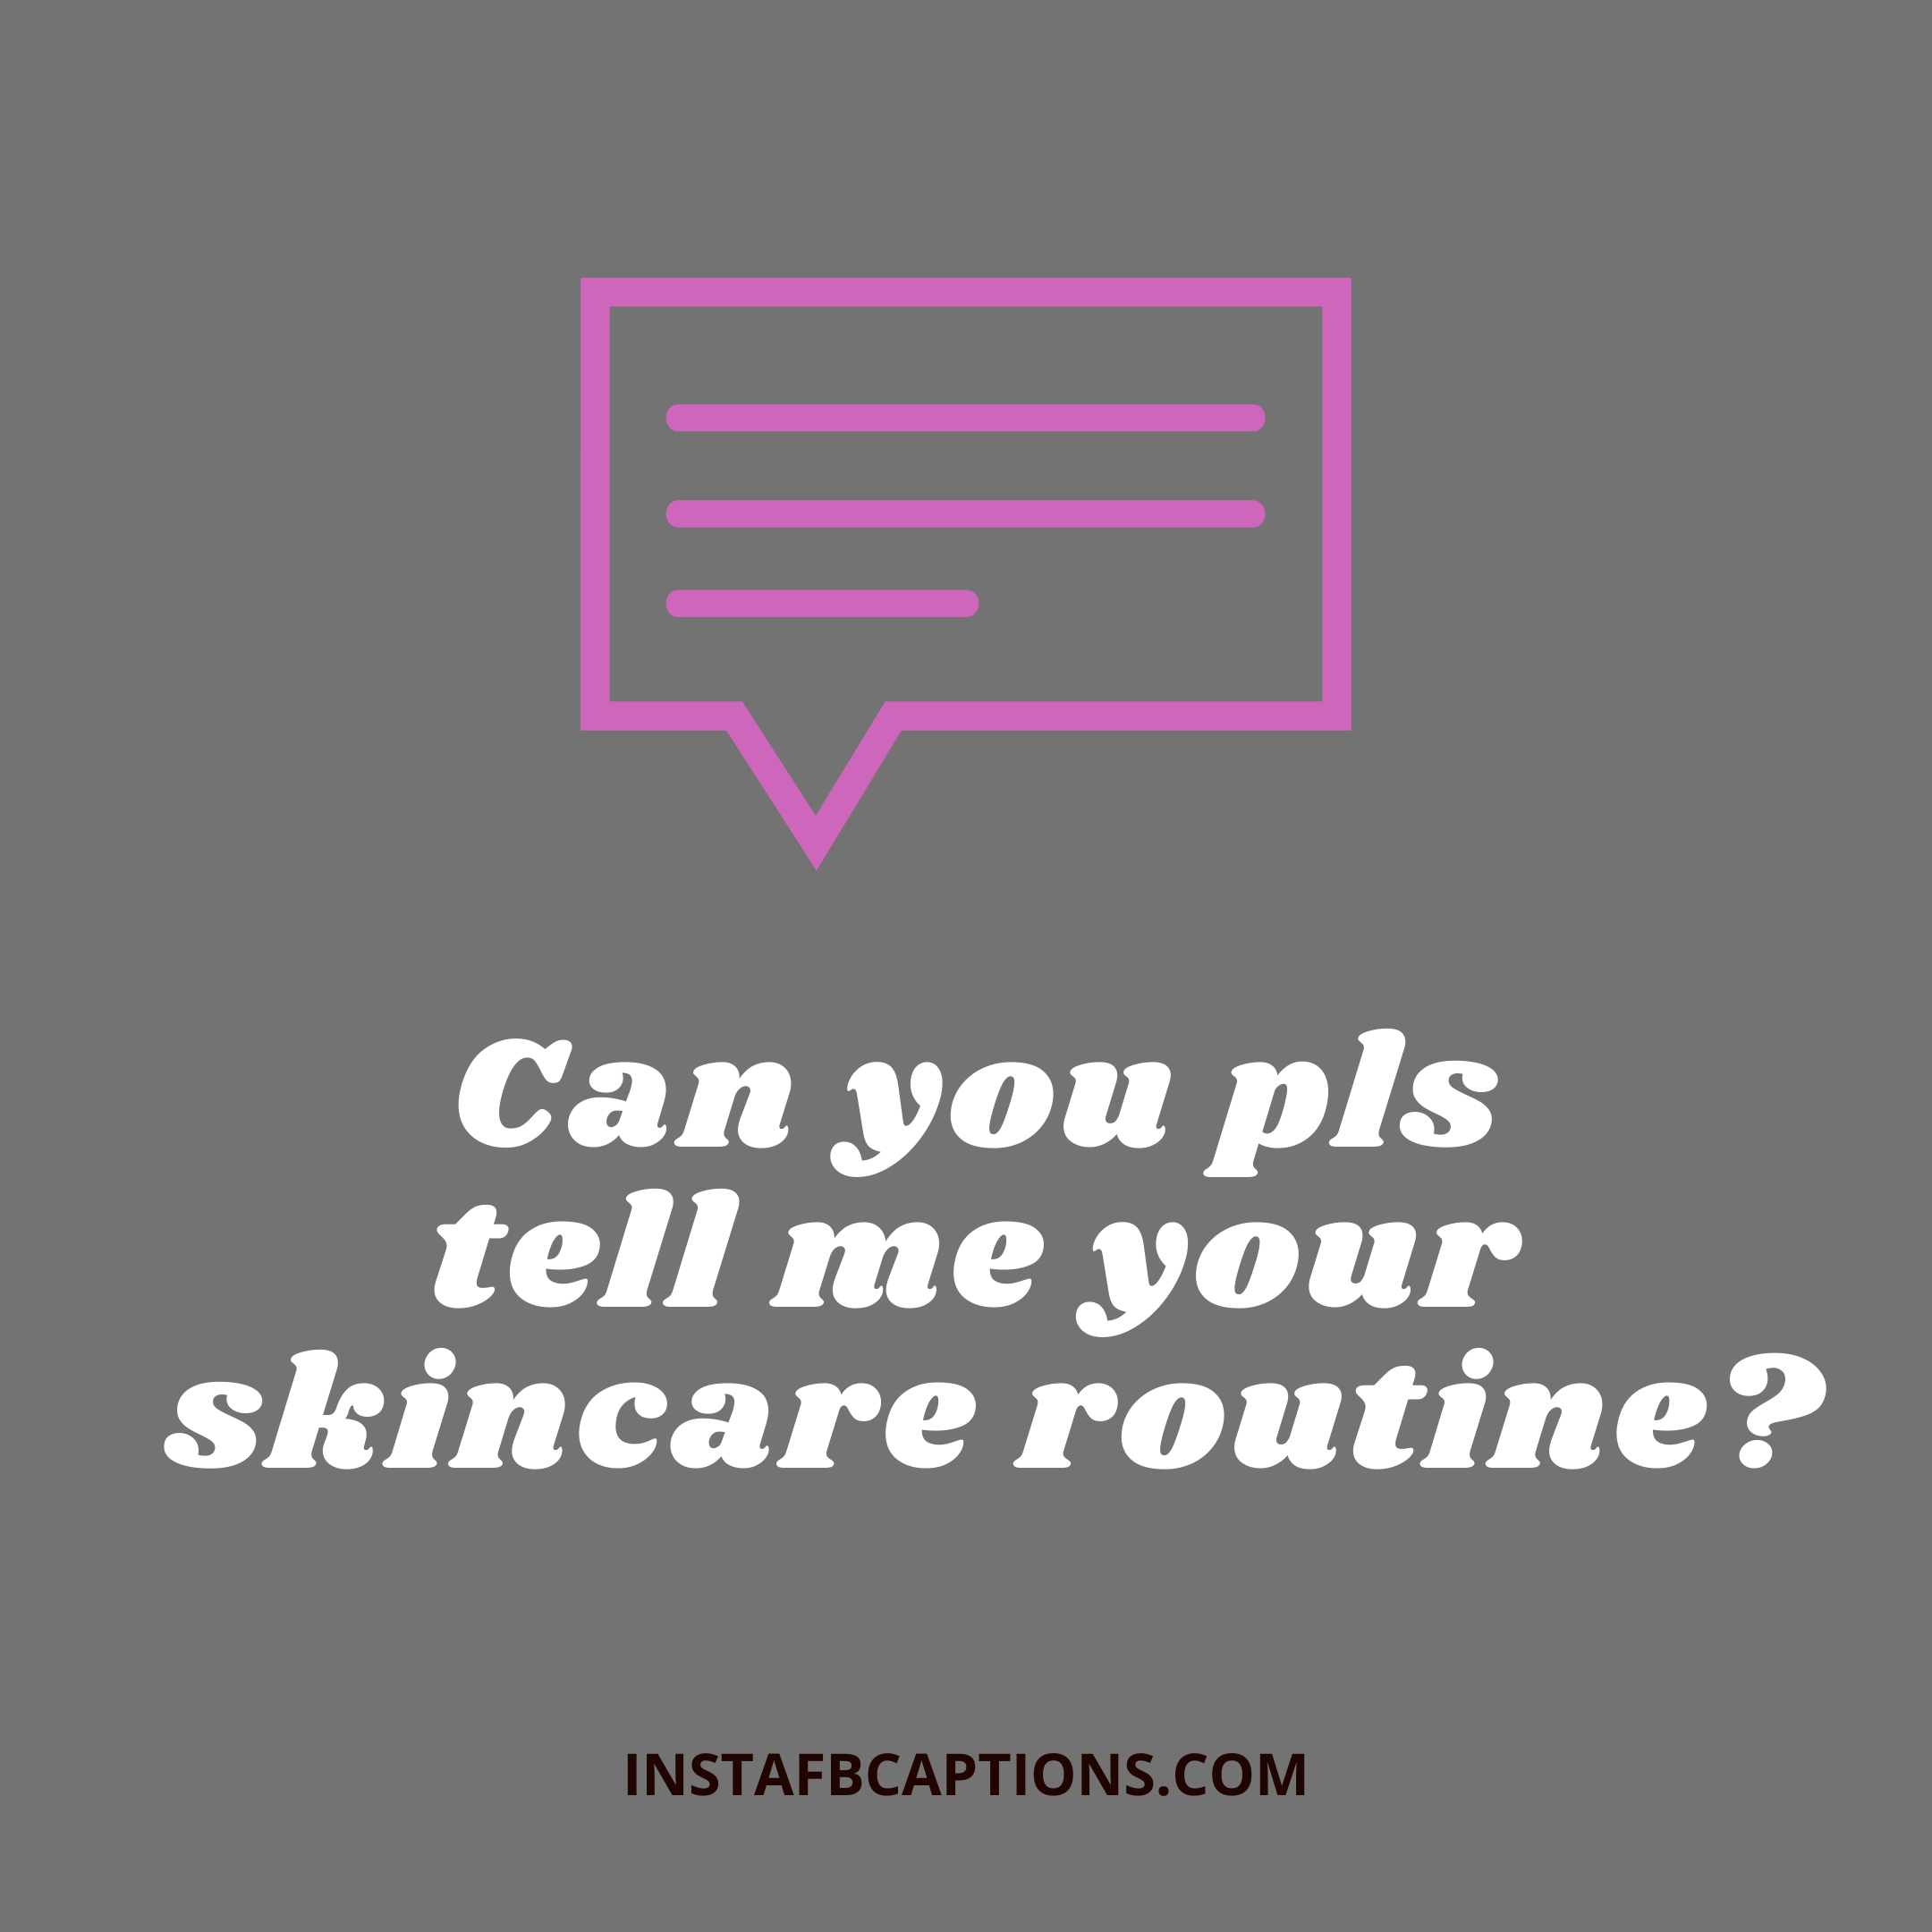 Can You Pls Tell Me Your Skincare Routine   - Can you pls tell me your skincare routine  - 600+ Best COMMENTS for GIRLS PICS 2021